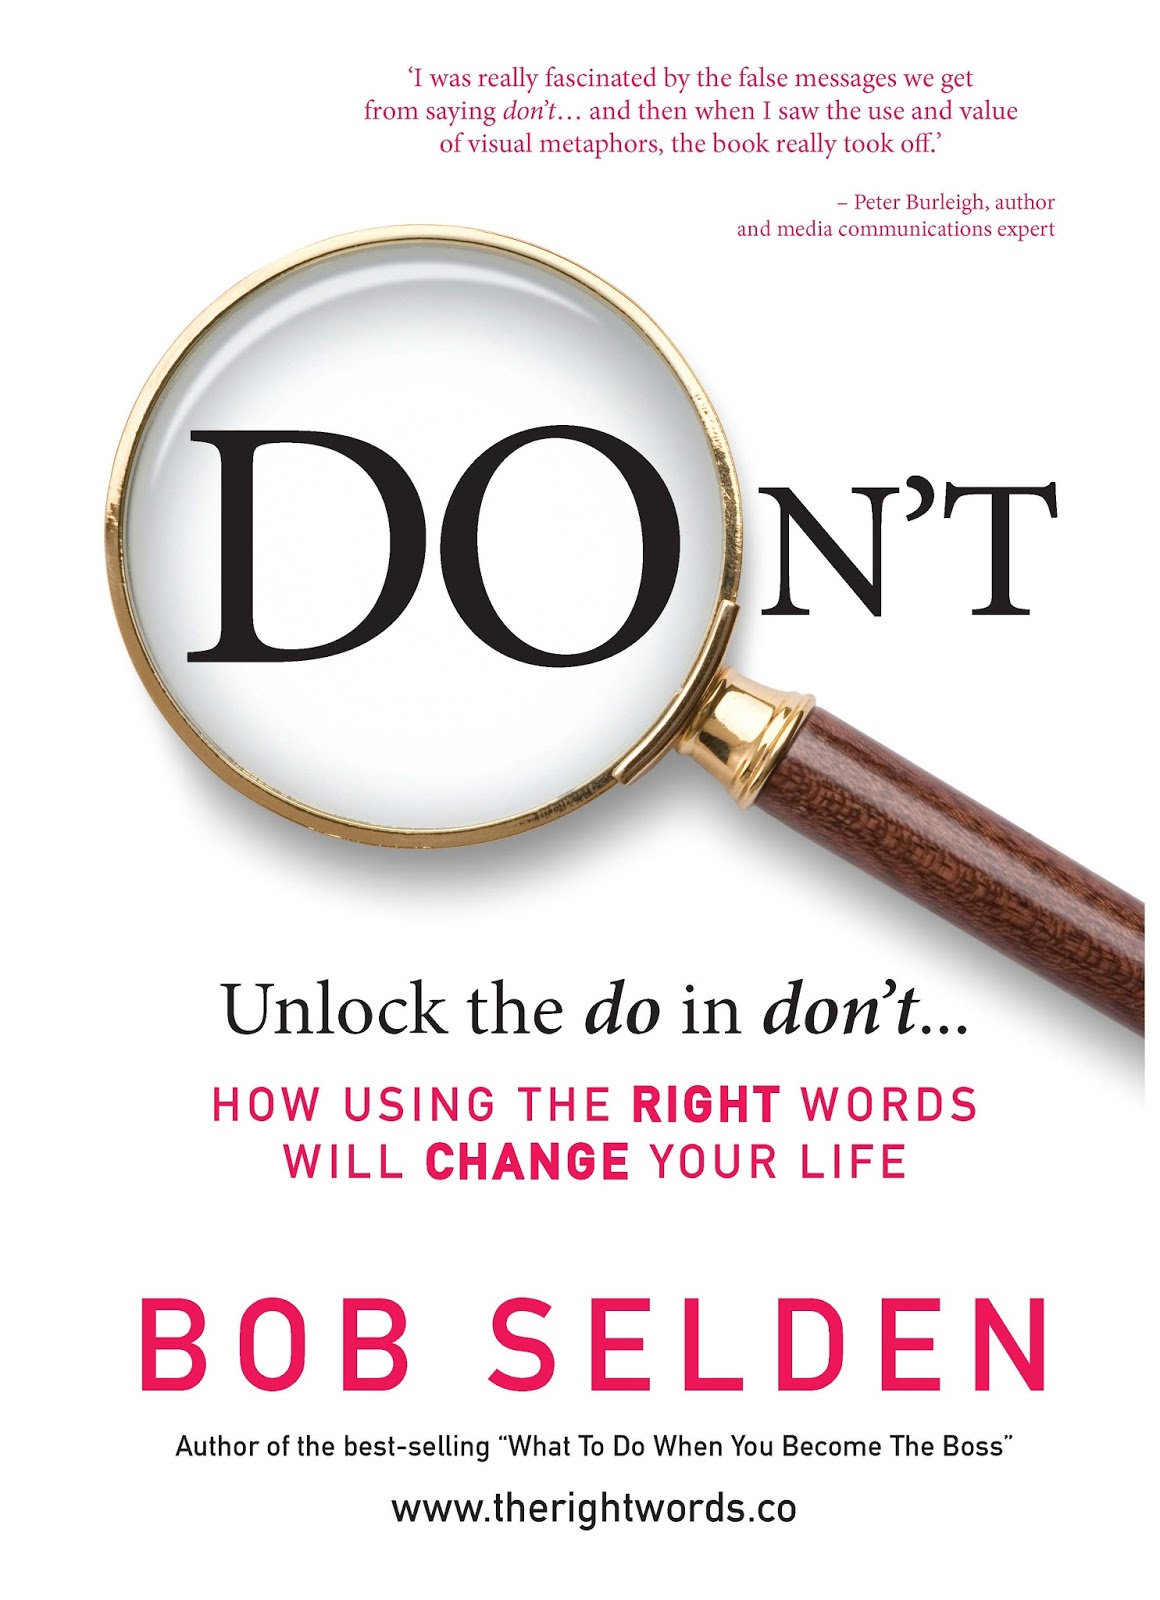 Interview with writer Bob Selden